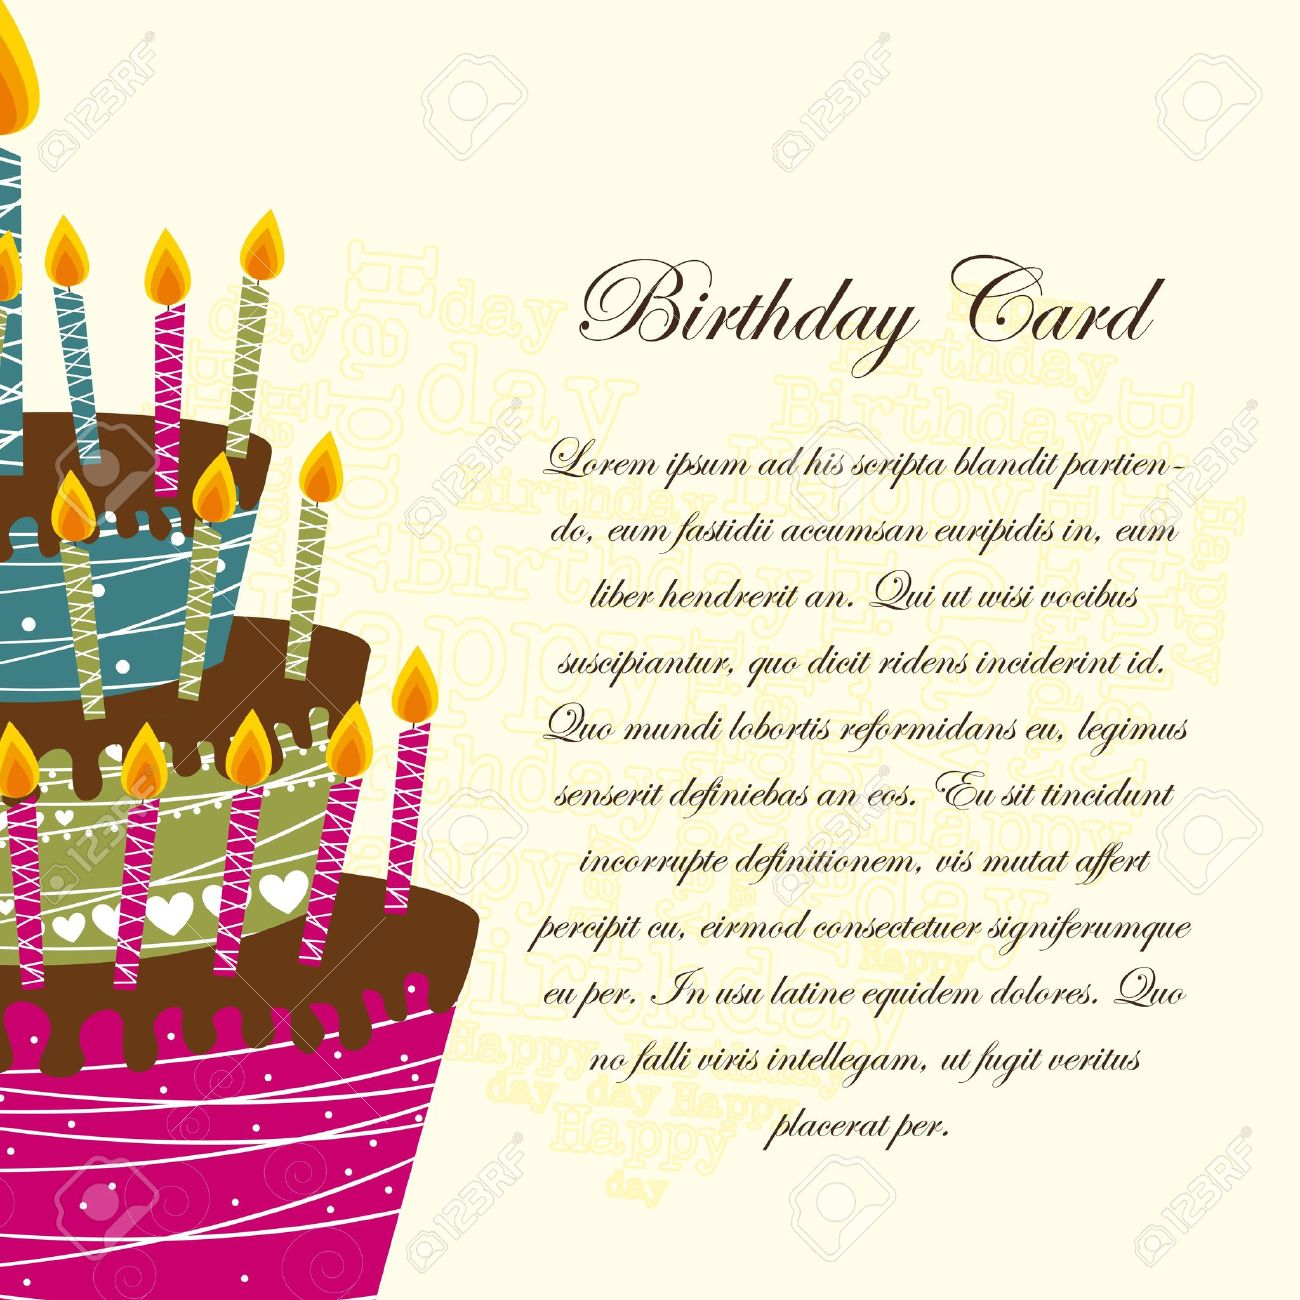 Birthday card with cake over beige background royalty free birthday card with cake over beige background stock vector 12459227 stopboris Choice Image